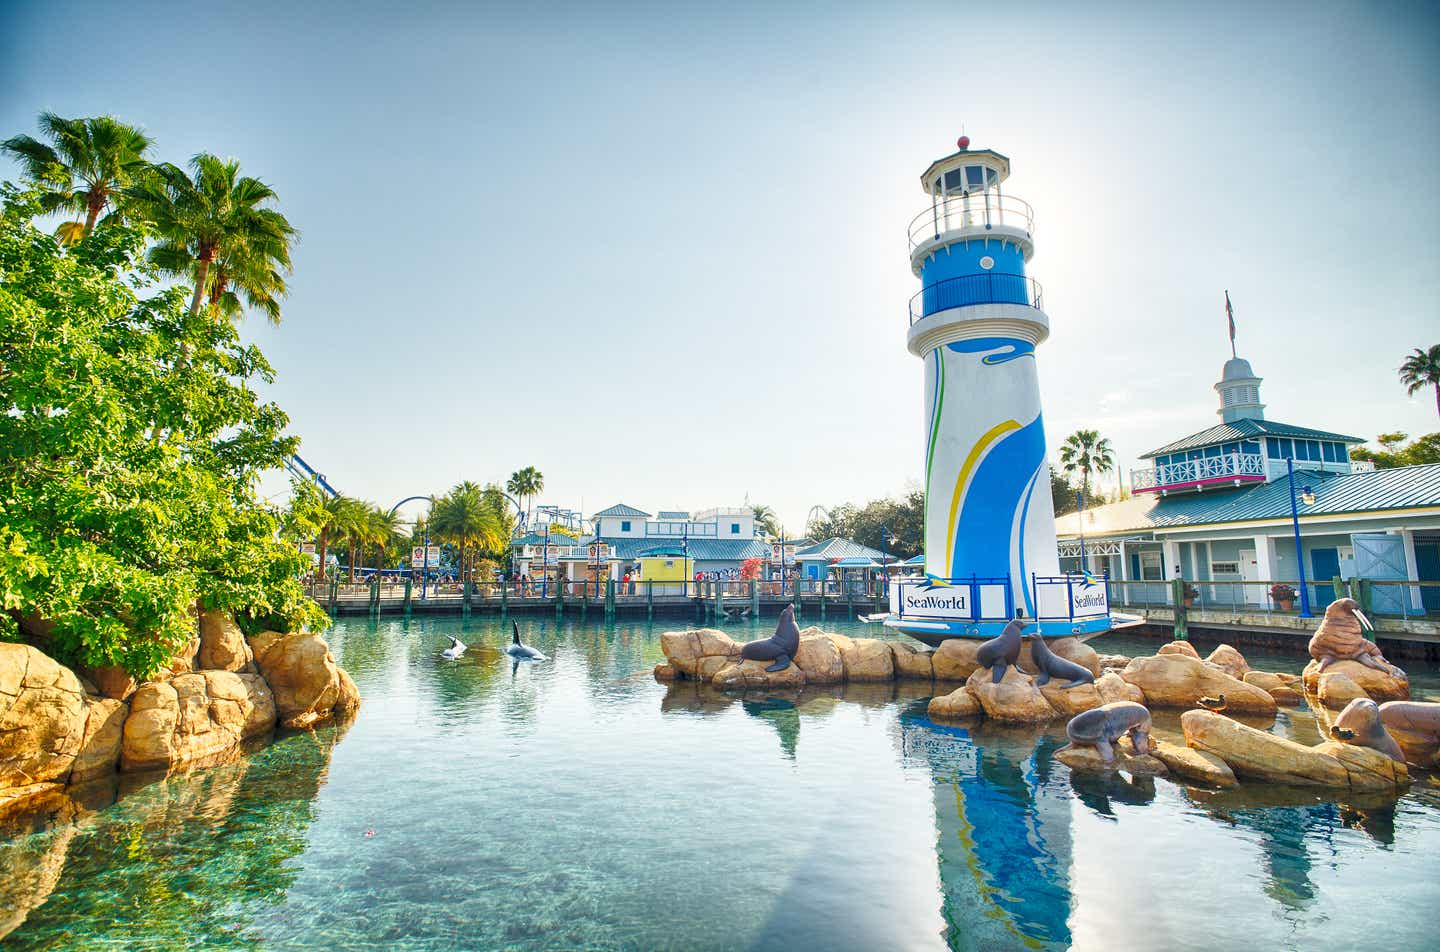 Exterior view of SeaWorld Orlando